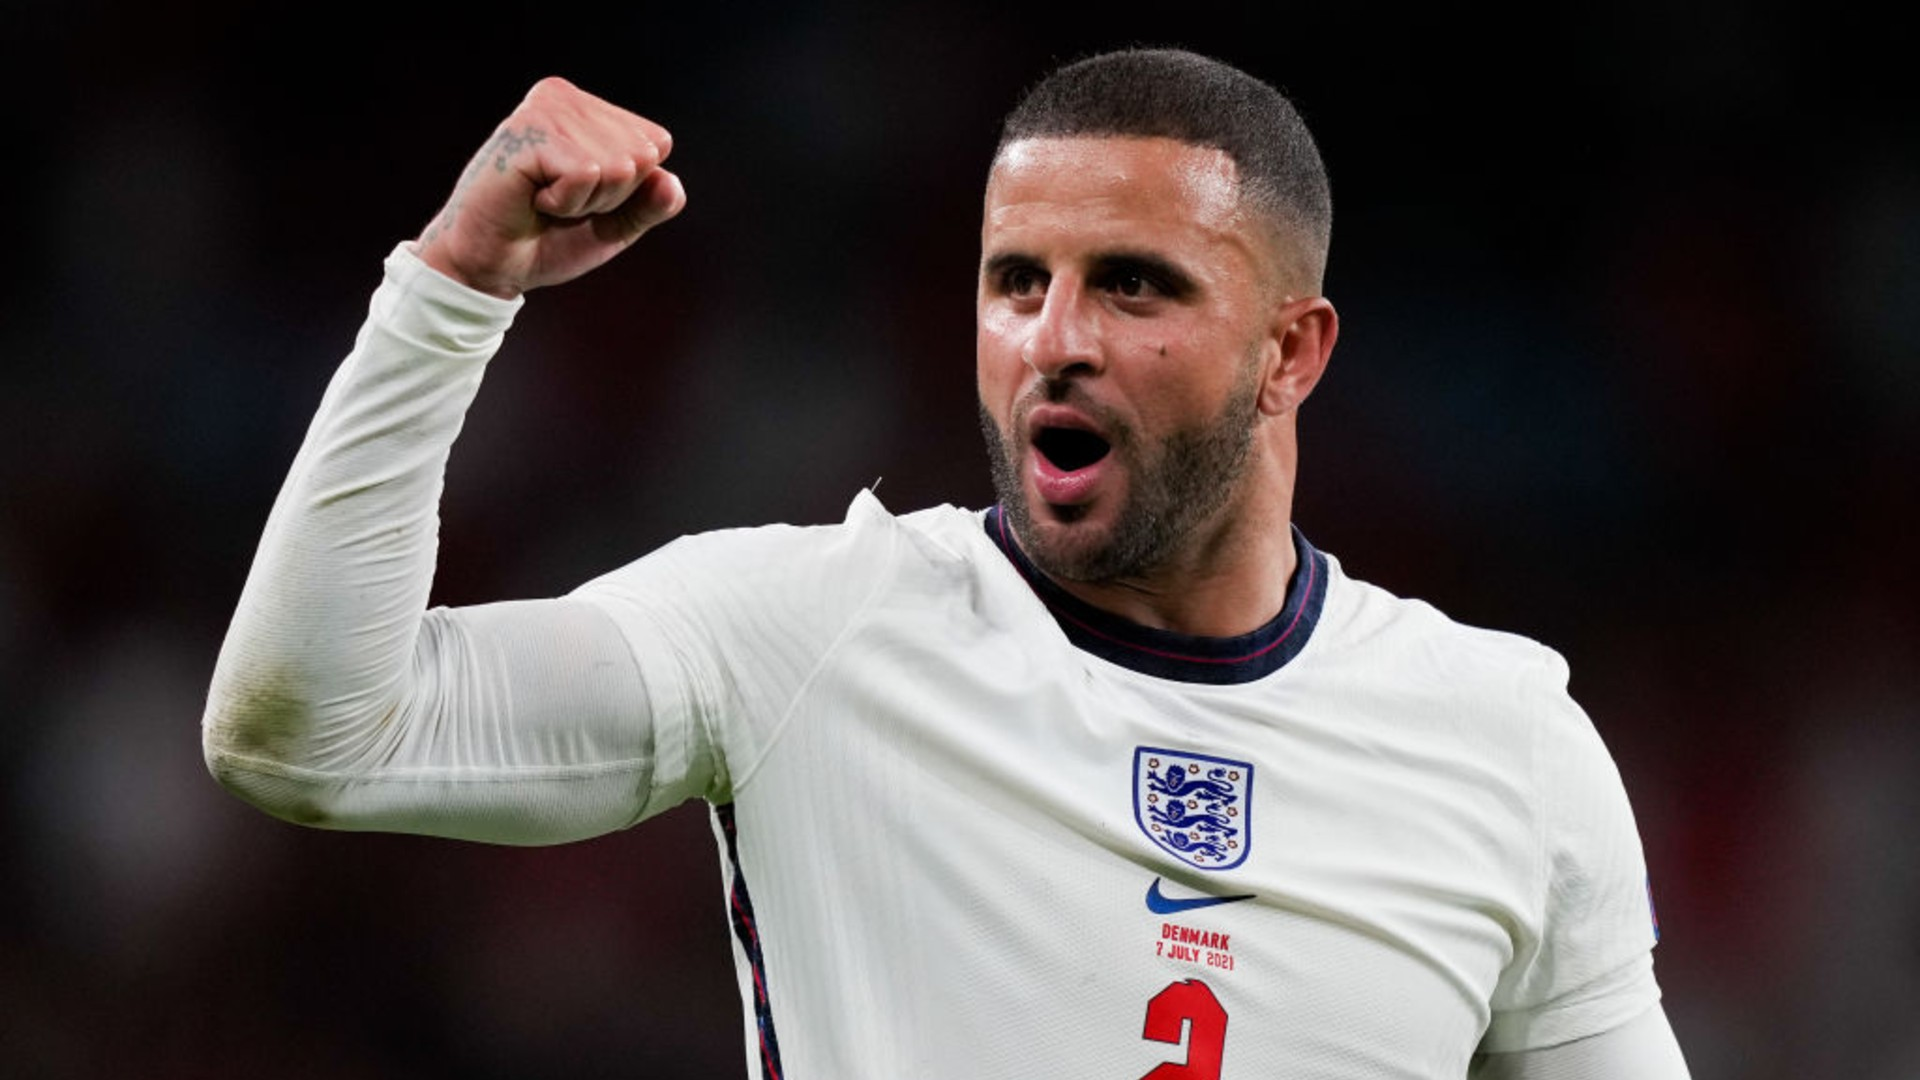 LIONHEART: Walker was one of the standout performers in England's march to the Euro 2020 final